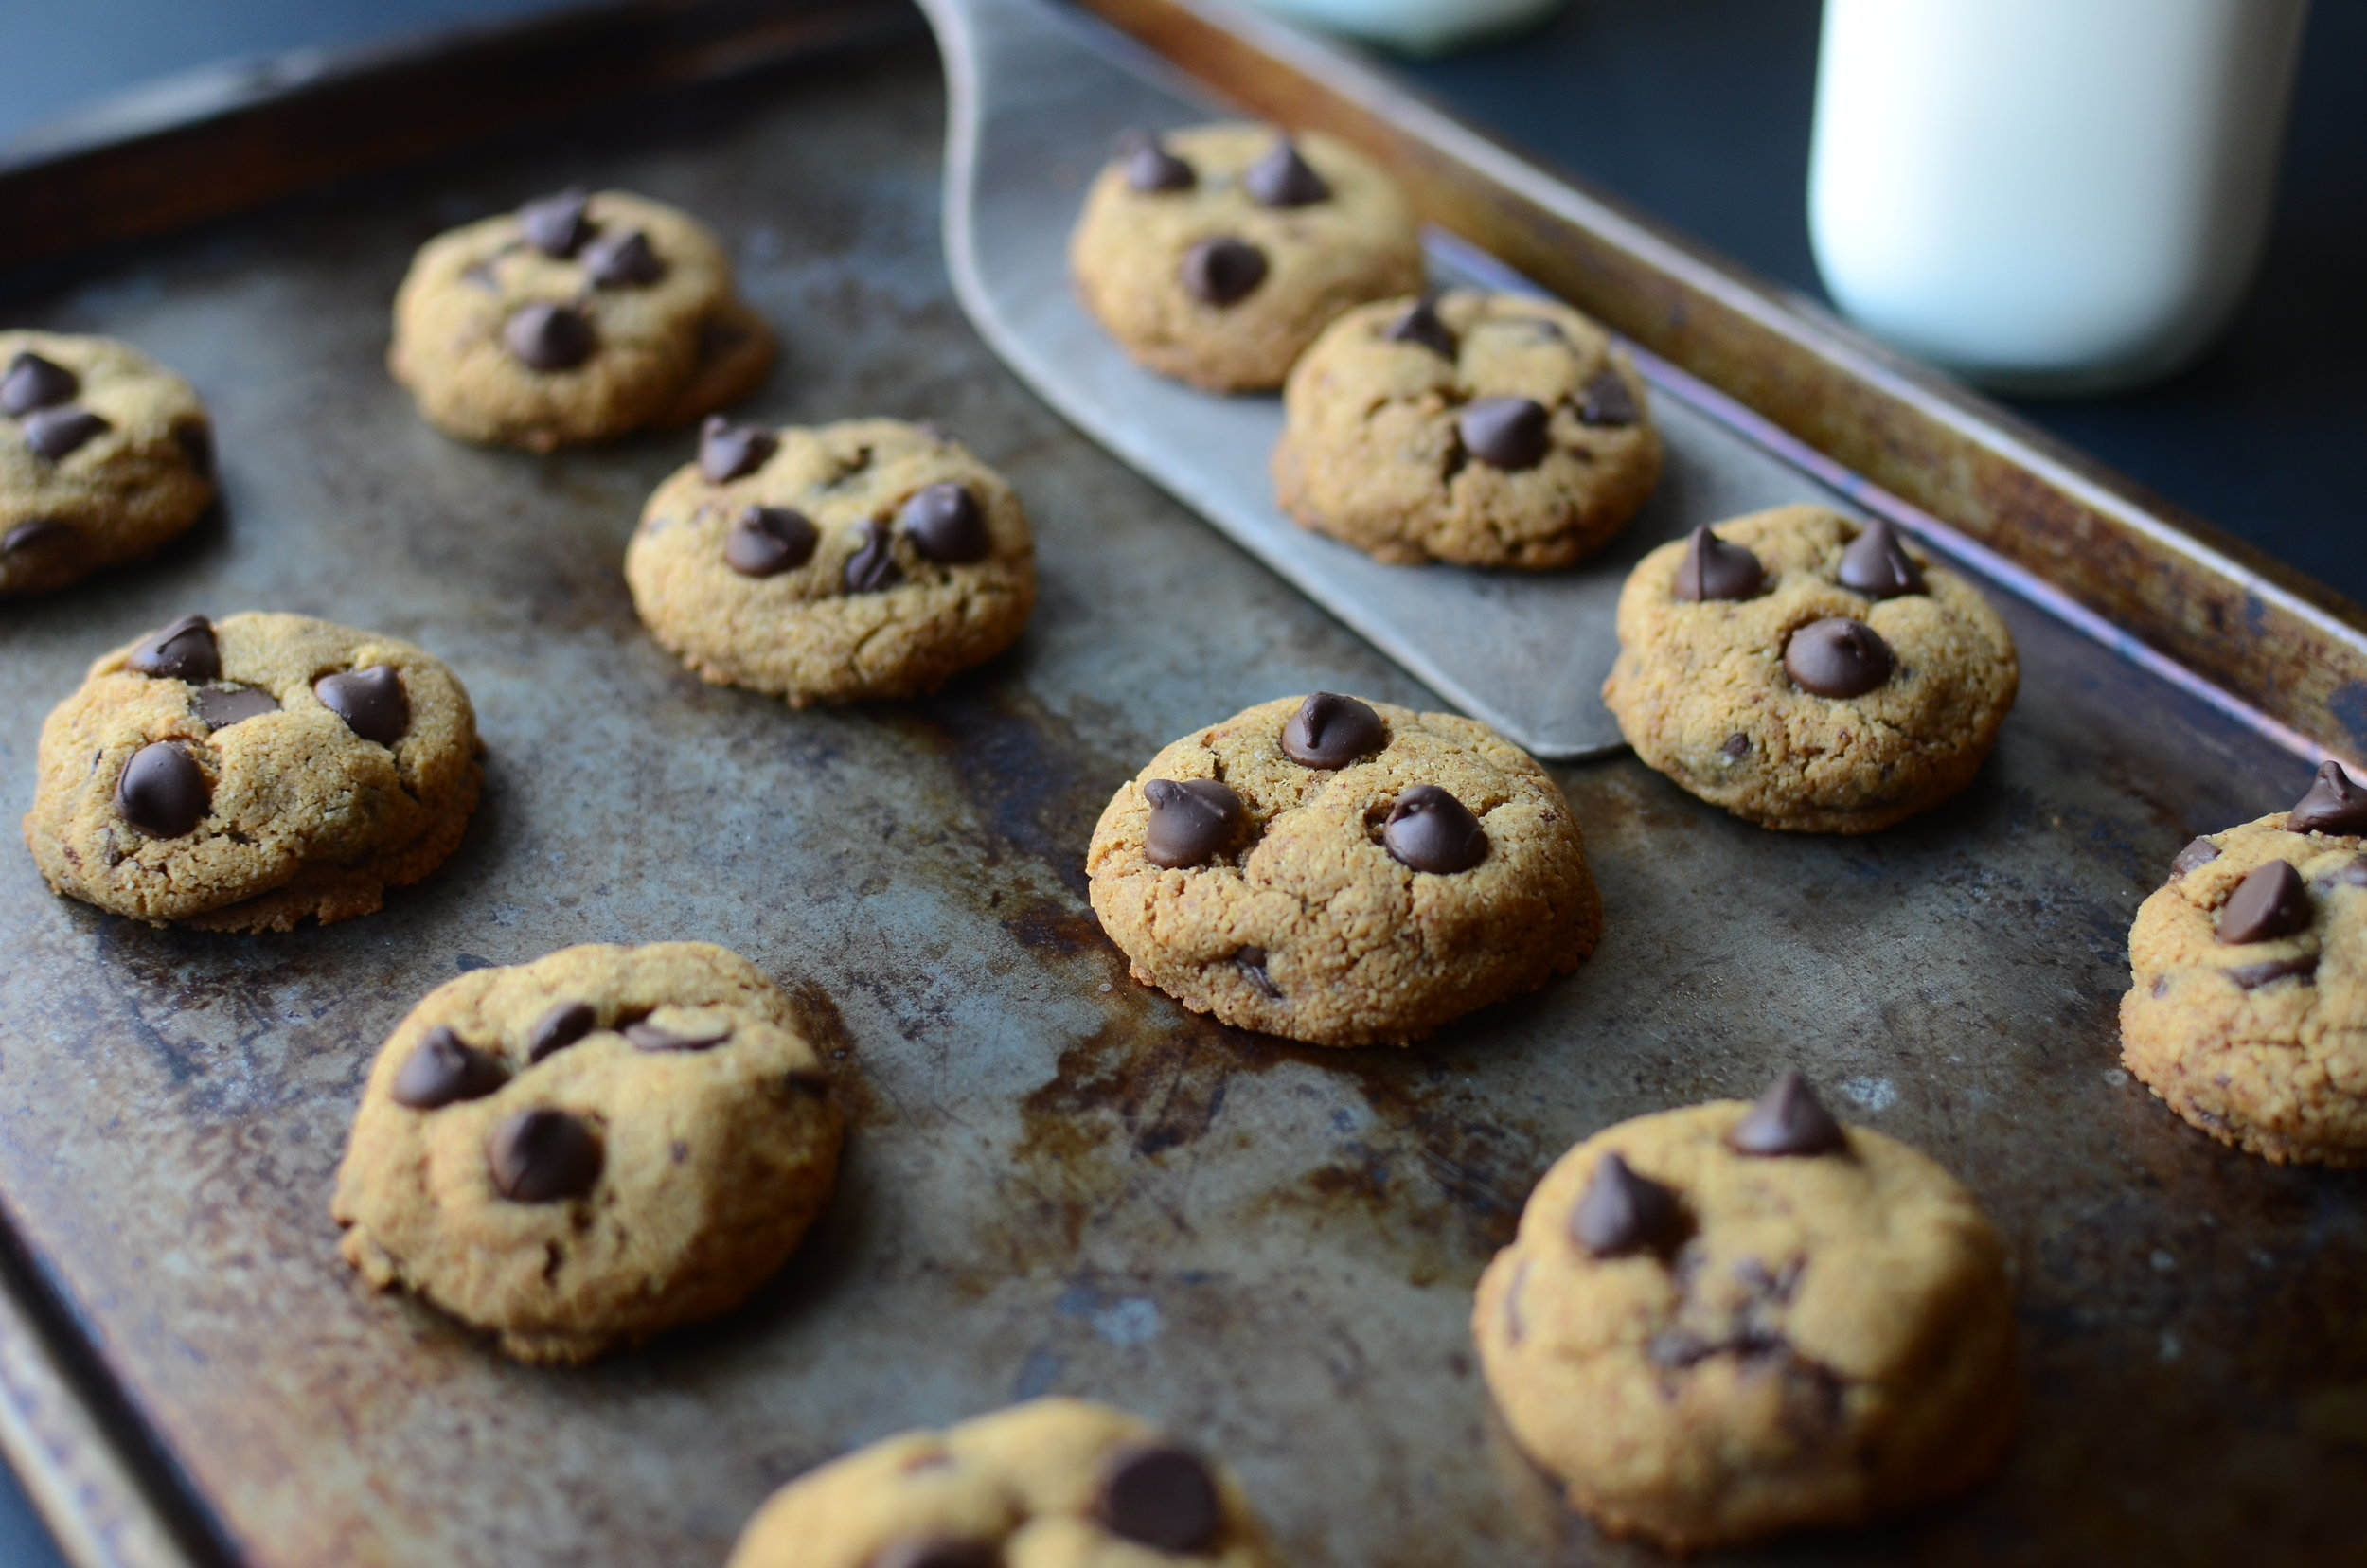 Gluten free chocolate chip cookies. almond meal chocolate chip cookies. almond flour chocolate chip cookies. gluten-free almond meal and coconut oil cookies.